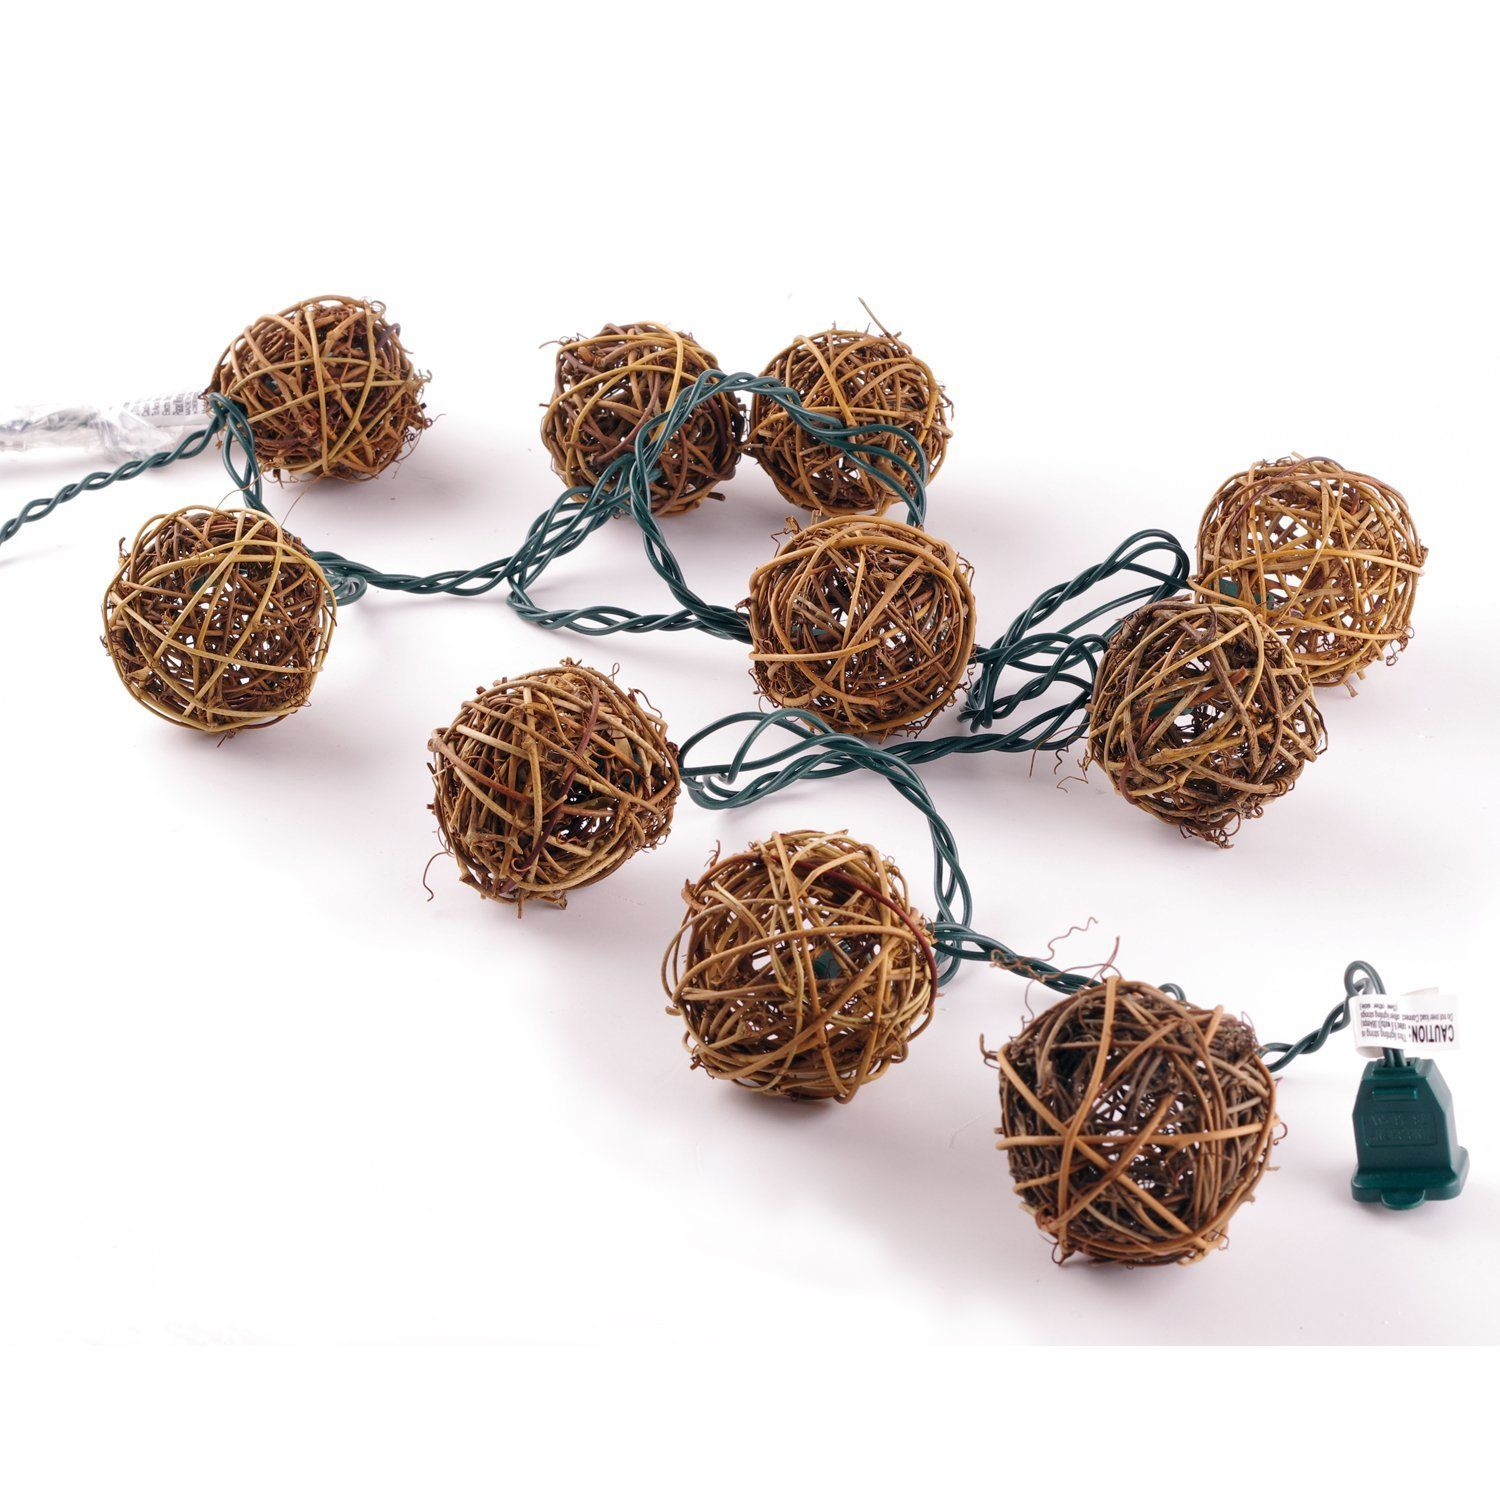 lidorebrown rattan balls string light set of 10 warm white light for christmas wedding garden patio and party incandescent four seasons courtyard 10